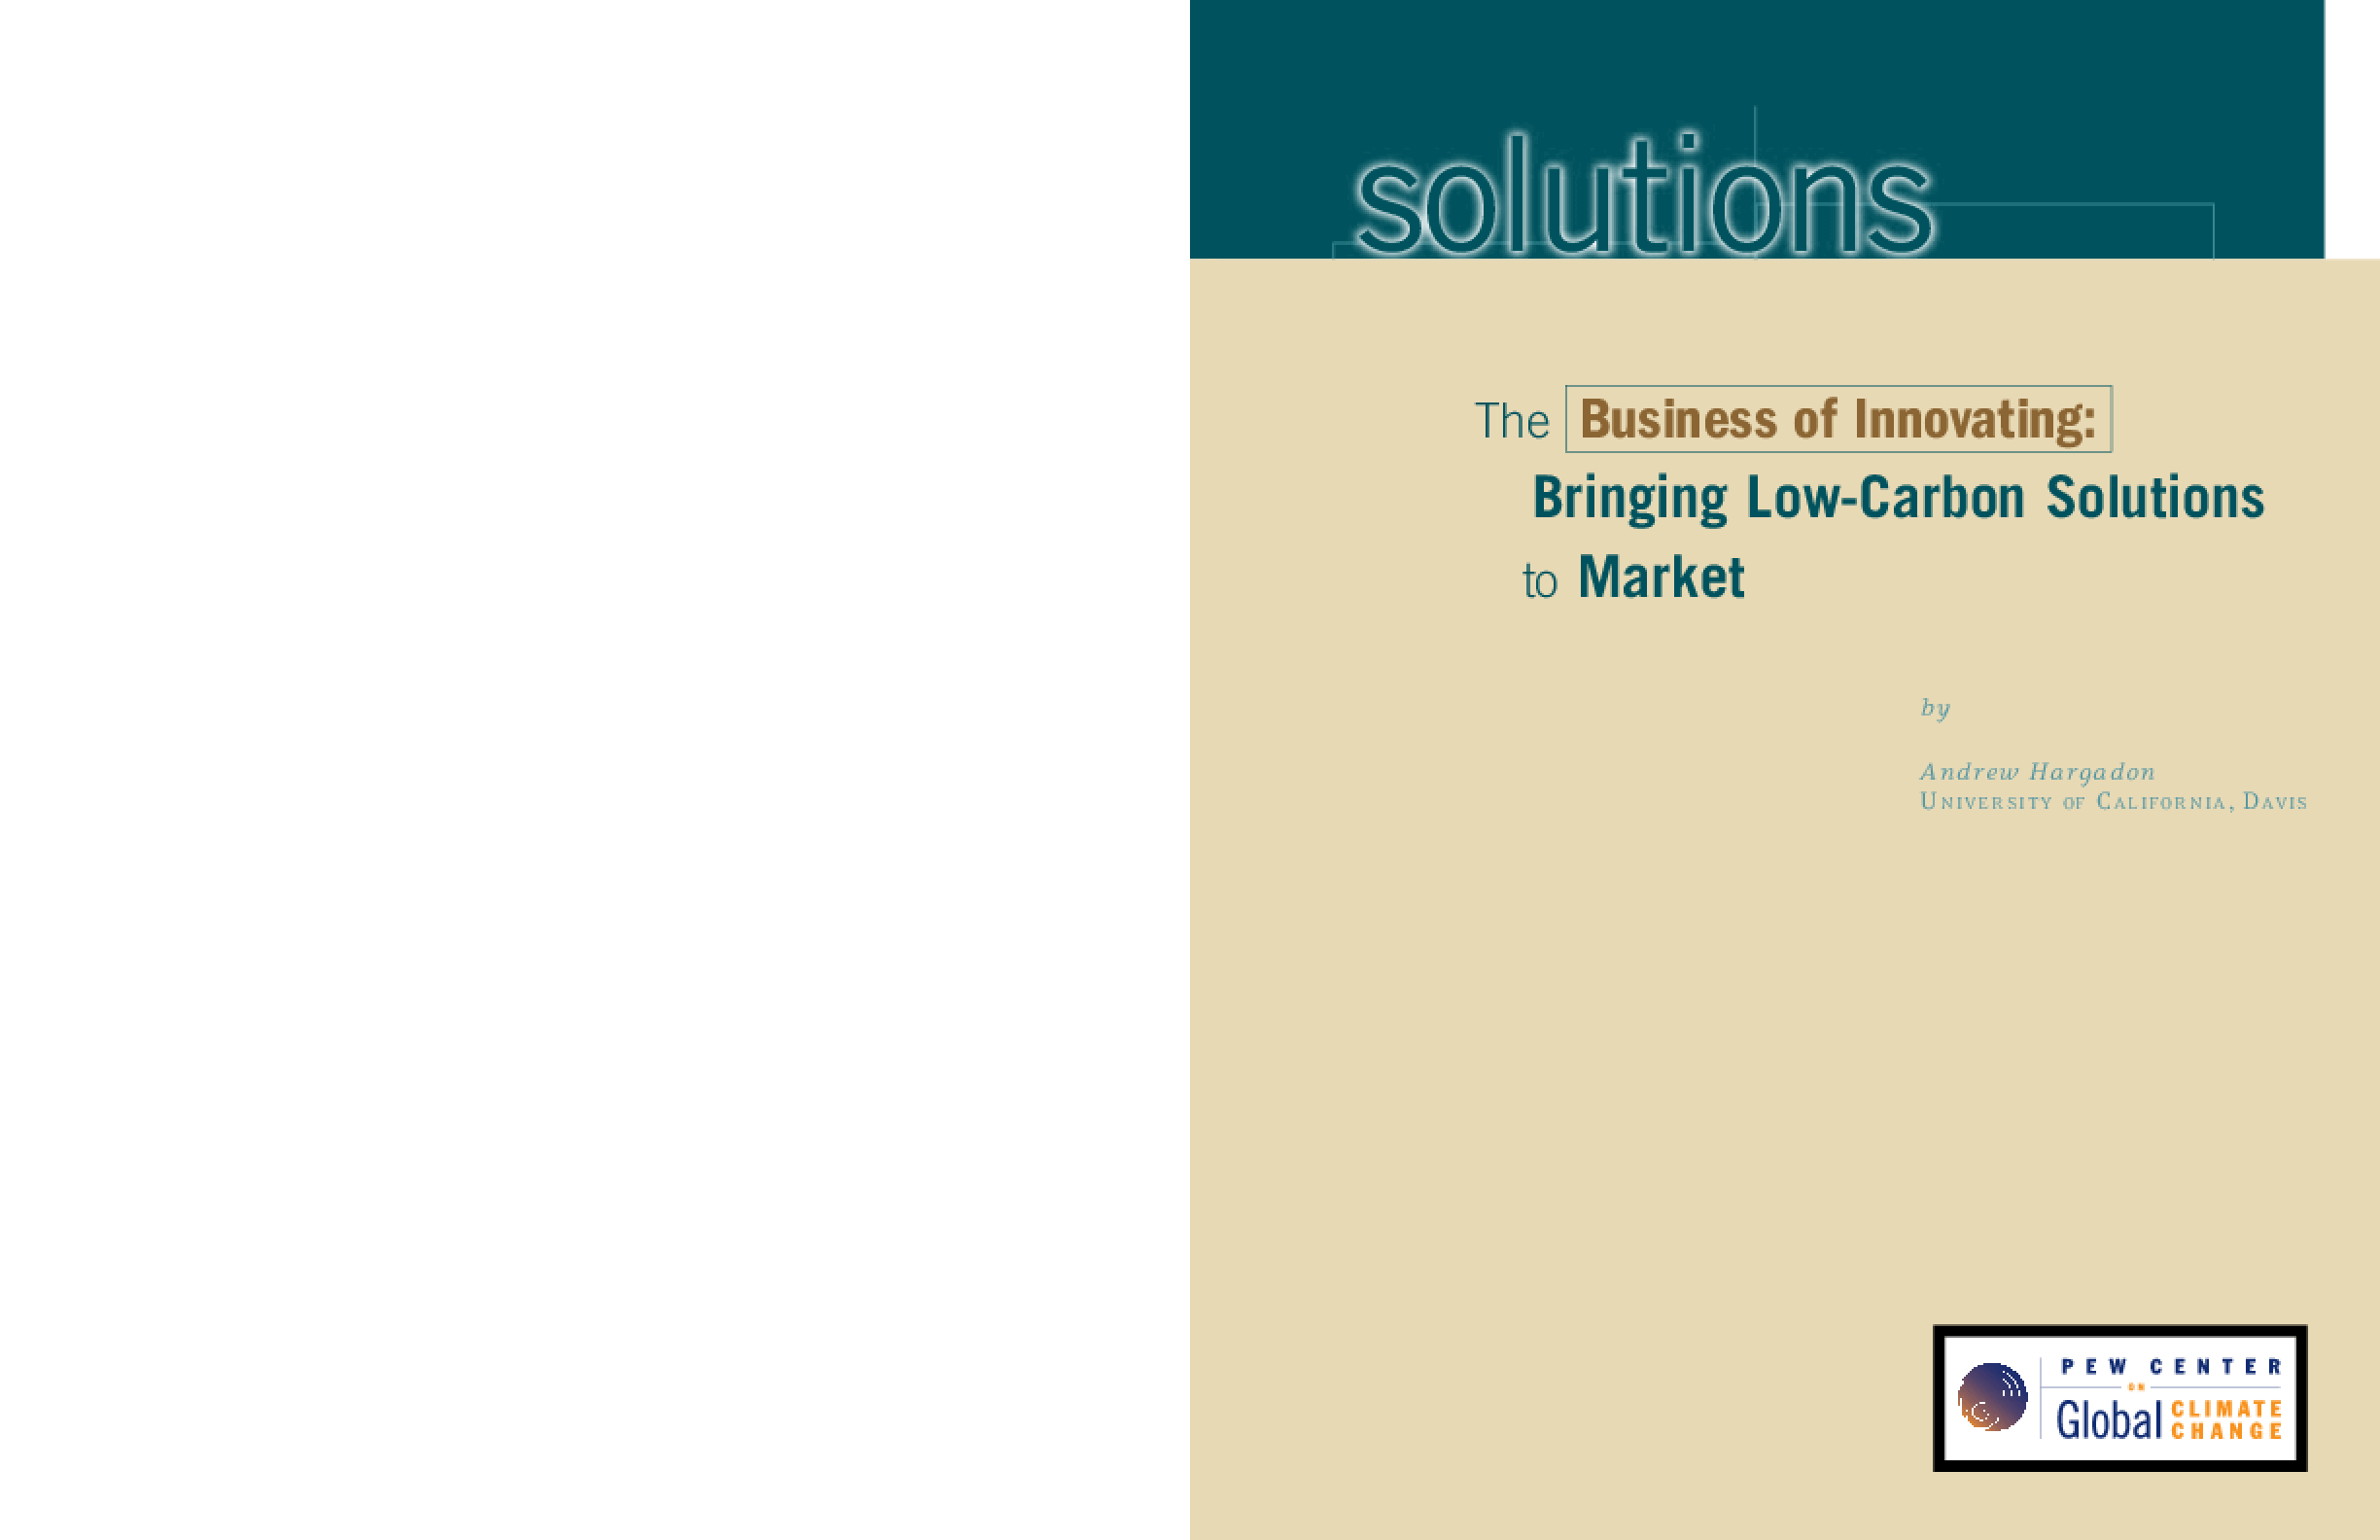 The Business of Innovating: Bringing Low-Carbon Solutions to Market